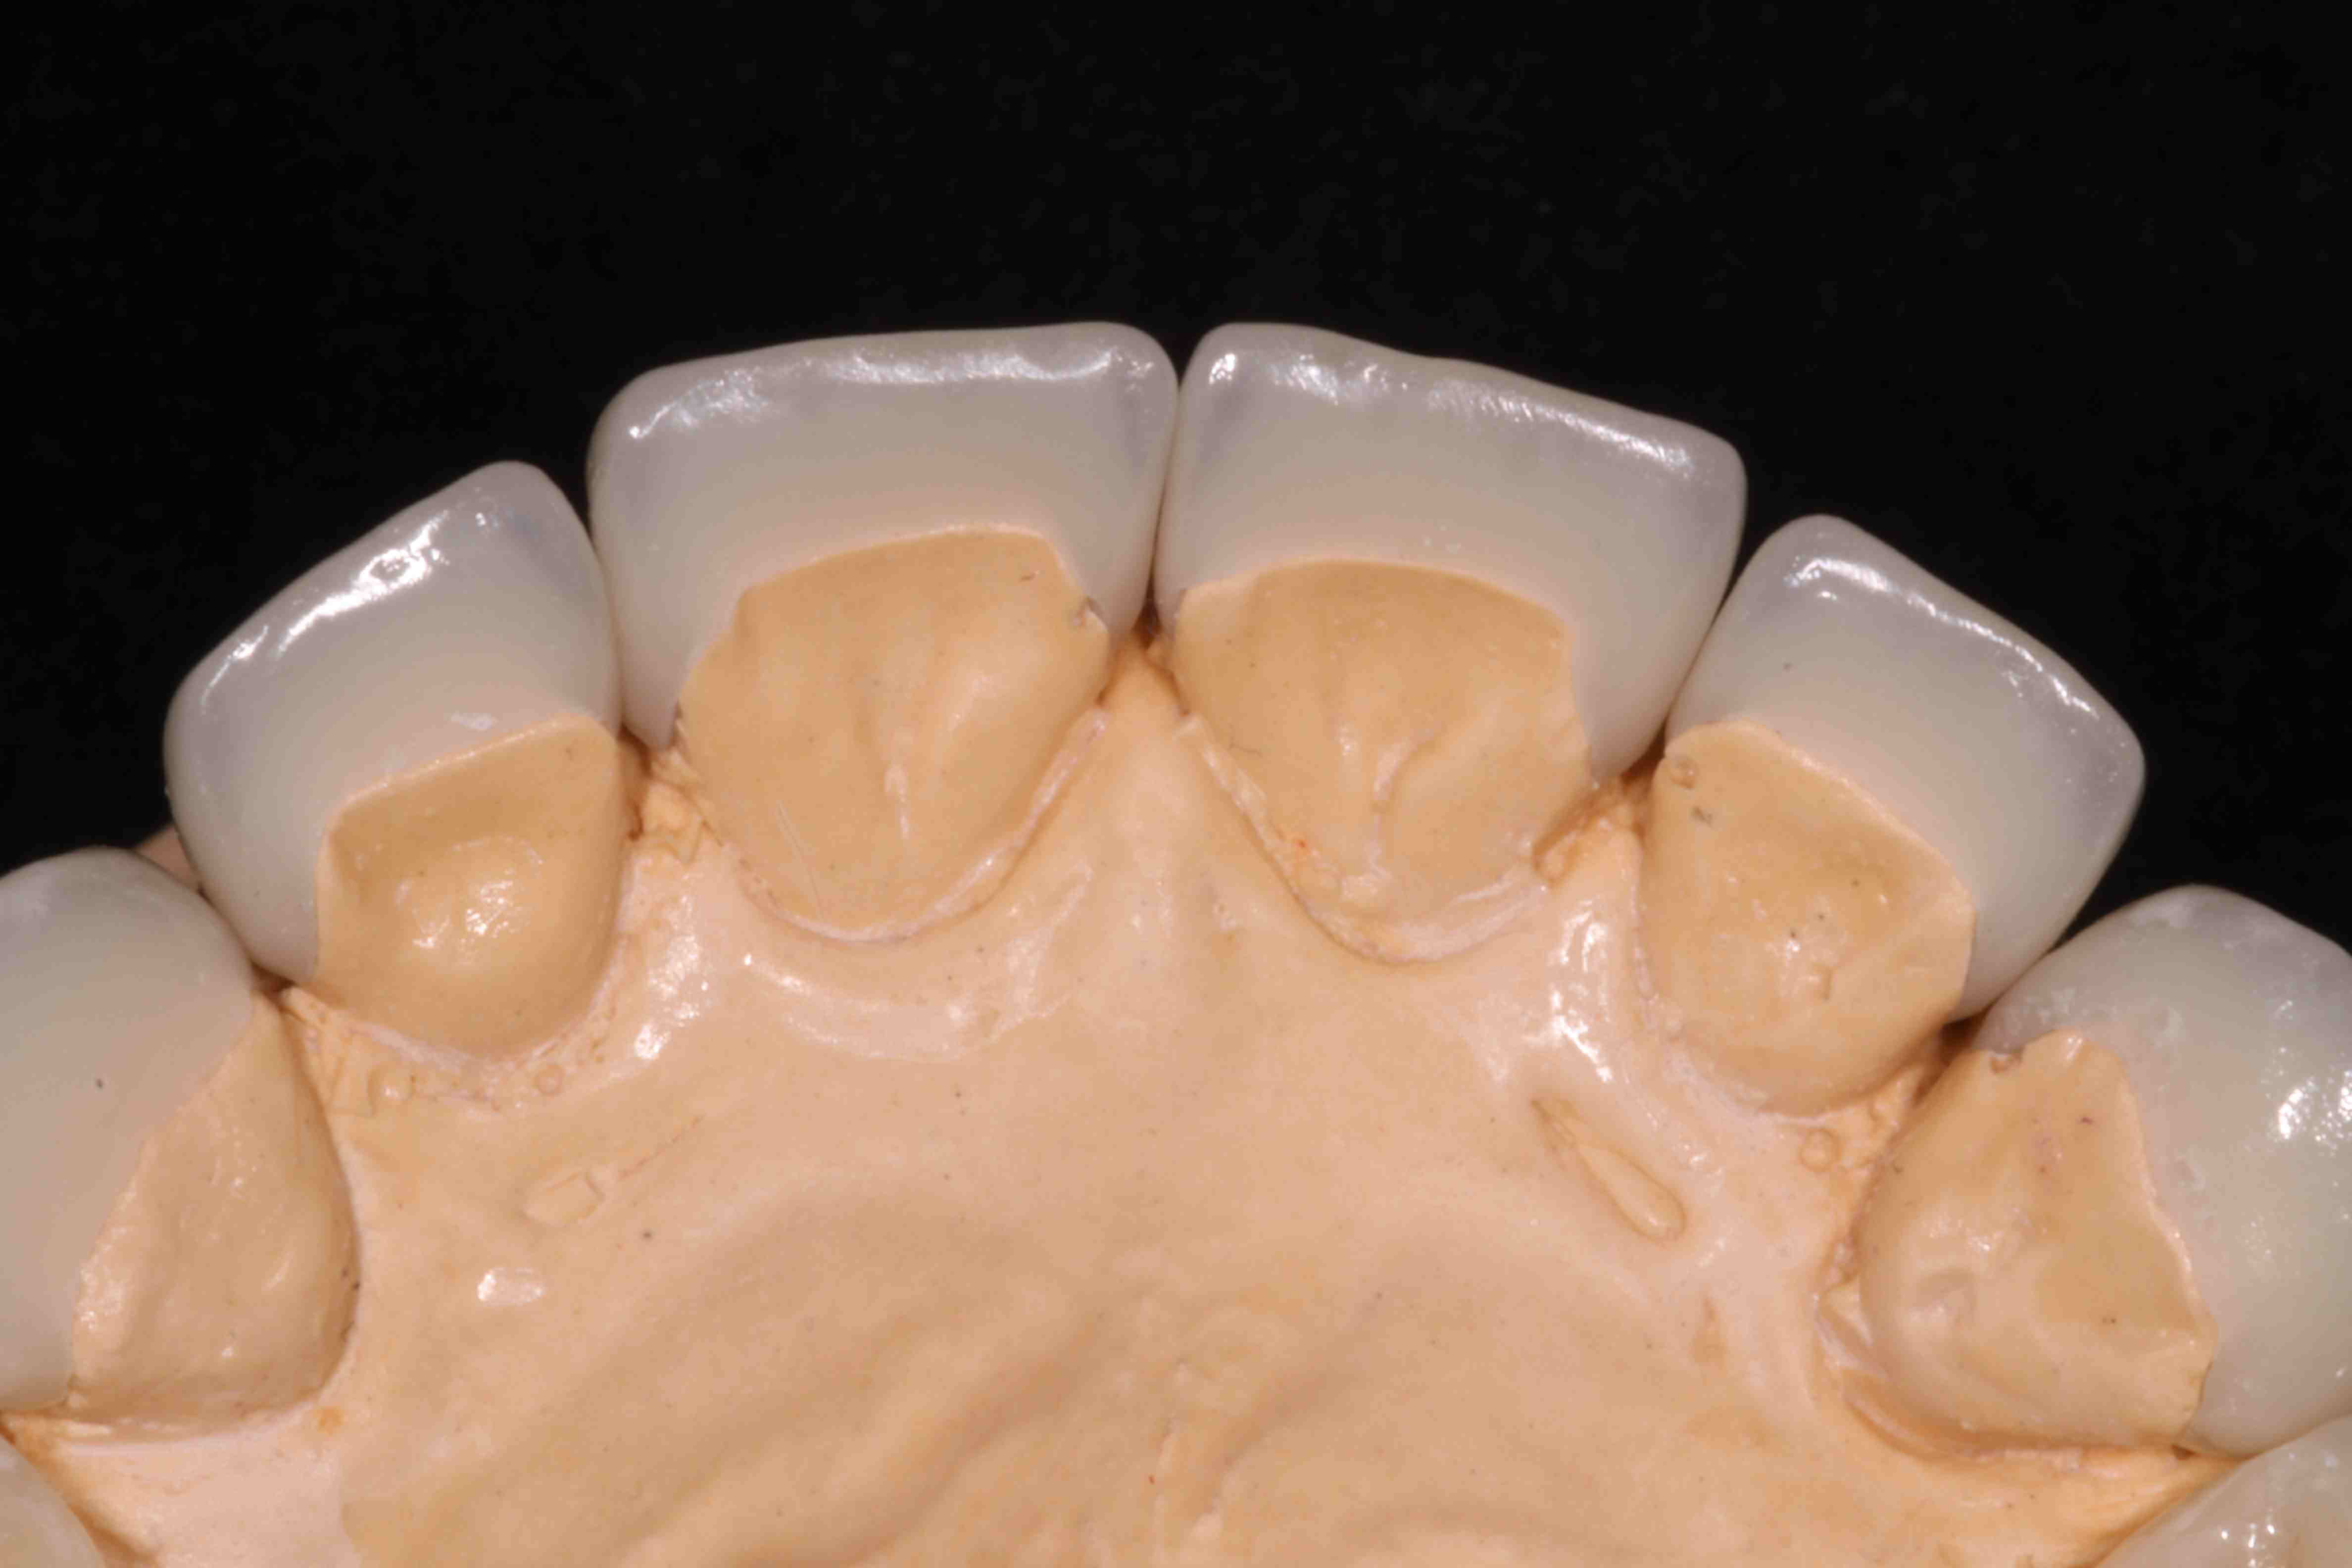 Curing Dentin Adhesive When Seating Indirect Restorations